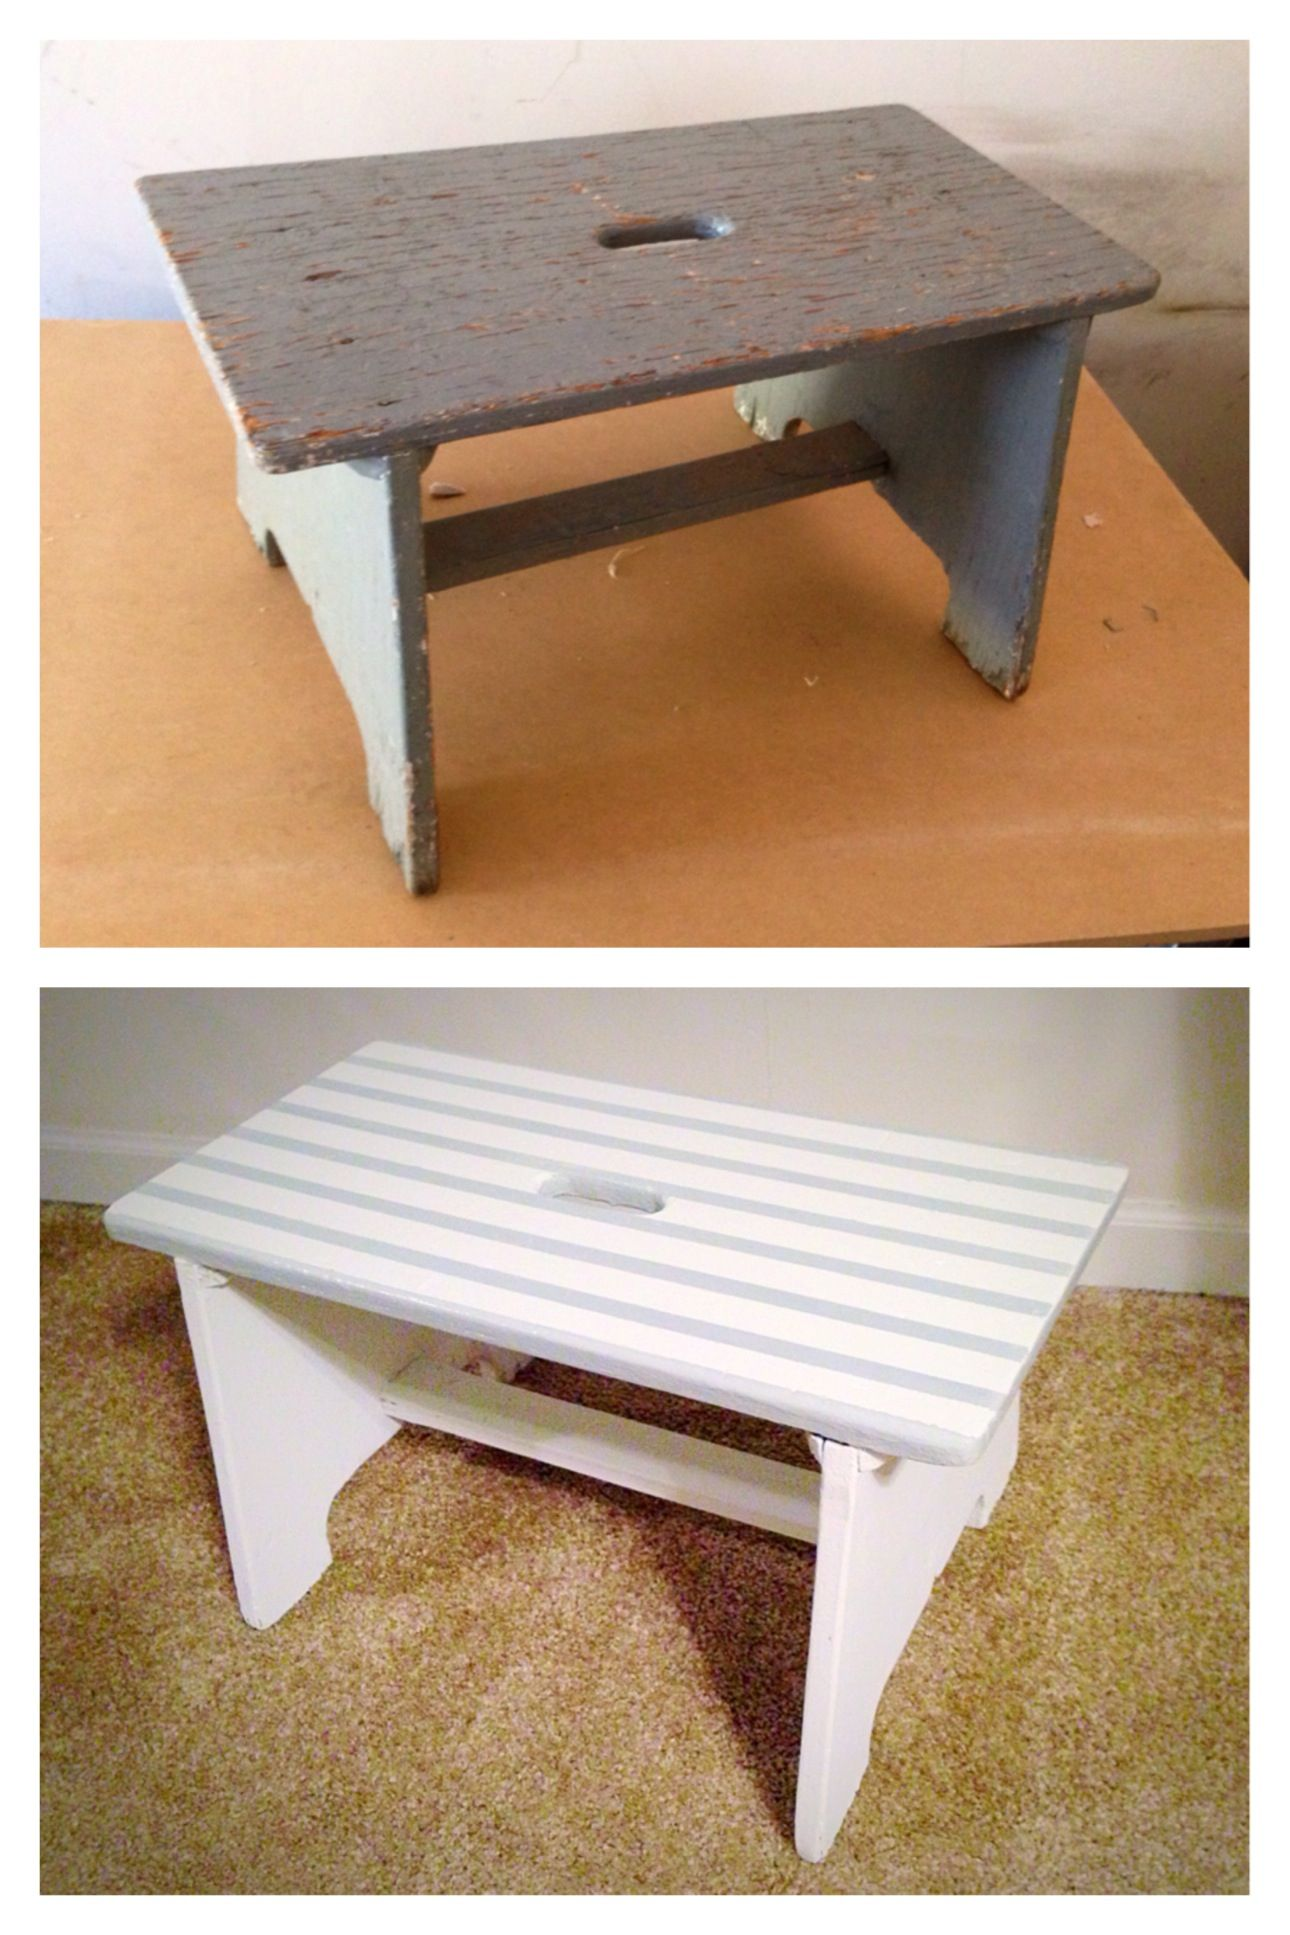 Mini Bench Before And After Repurposed Benches Seat Sofa